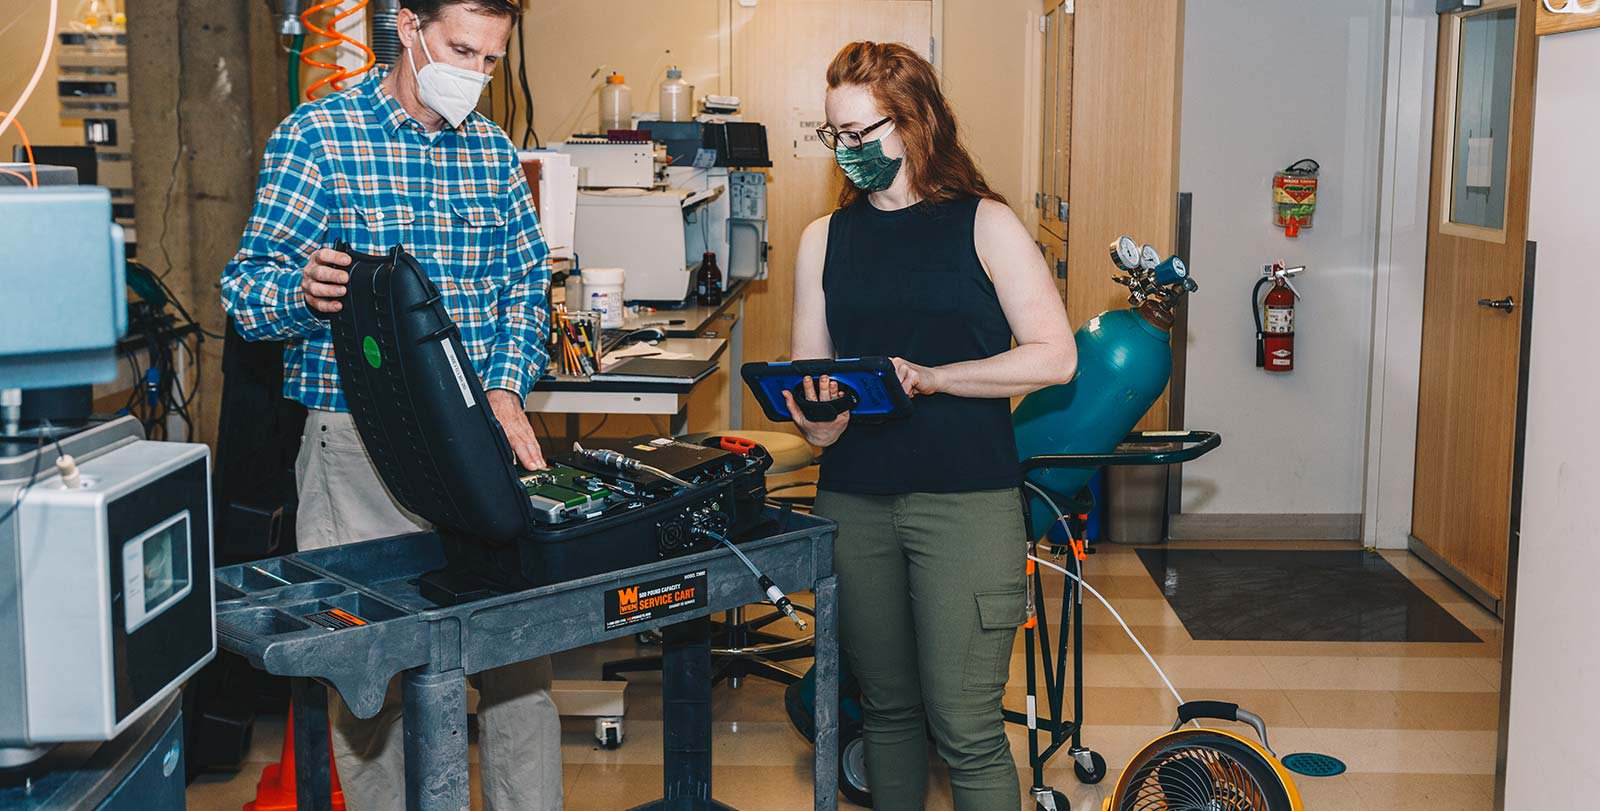 """Nathan has the GasScouter (methane detector) case open and is pointing at the battery pack. Elizabeth is holding the tablet that provides the readout from the GasScouter. The methane tank and yellow fan right behind Elizabeth are part of the gear, and in the """"ready-to-use"""" position."""